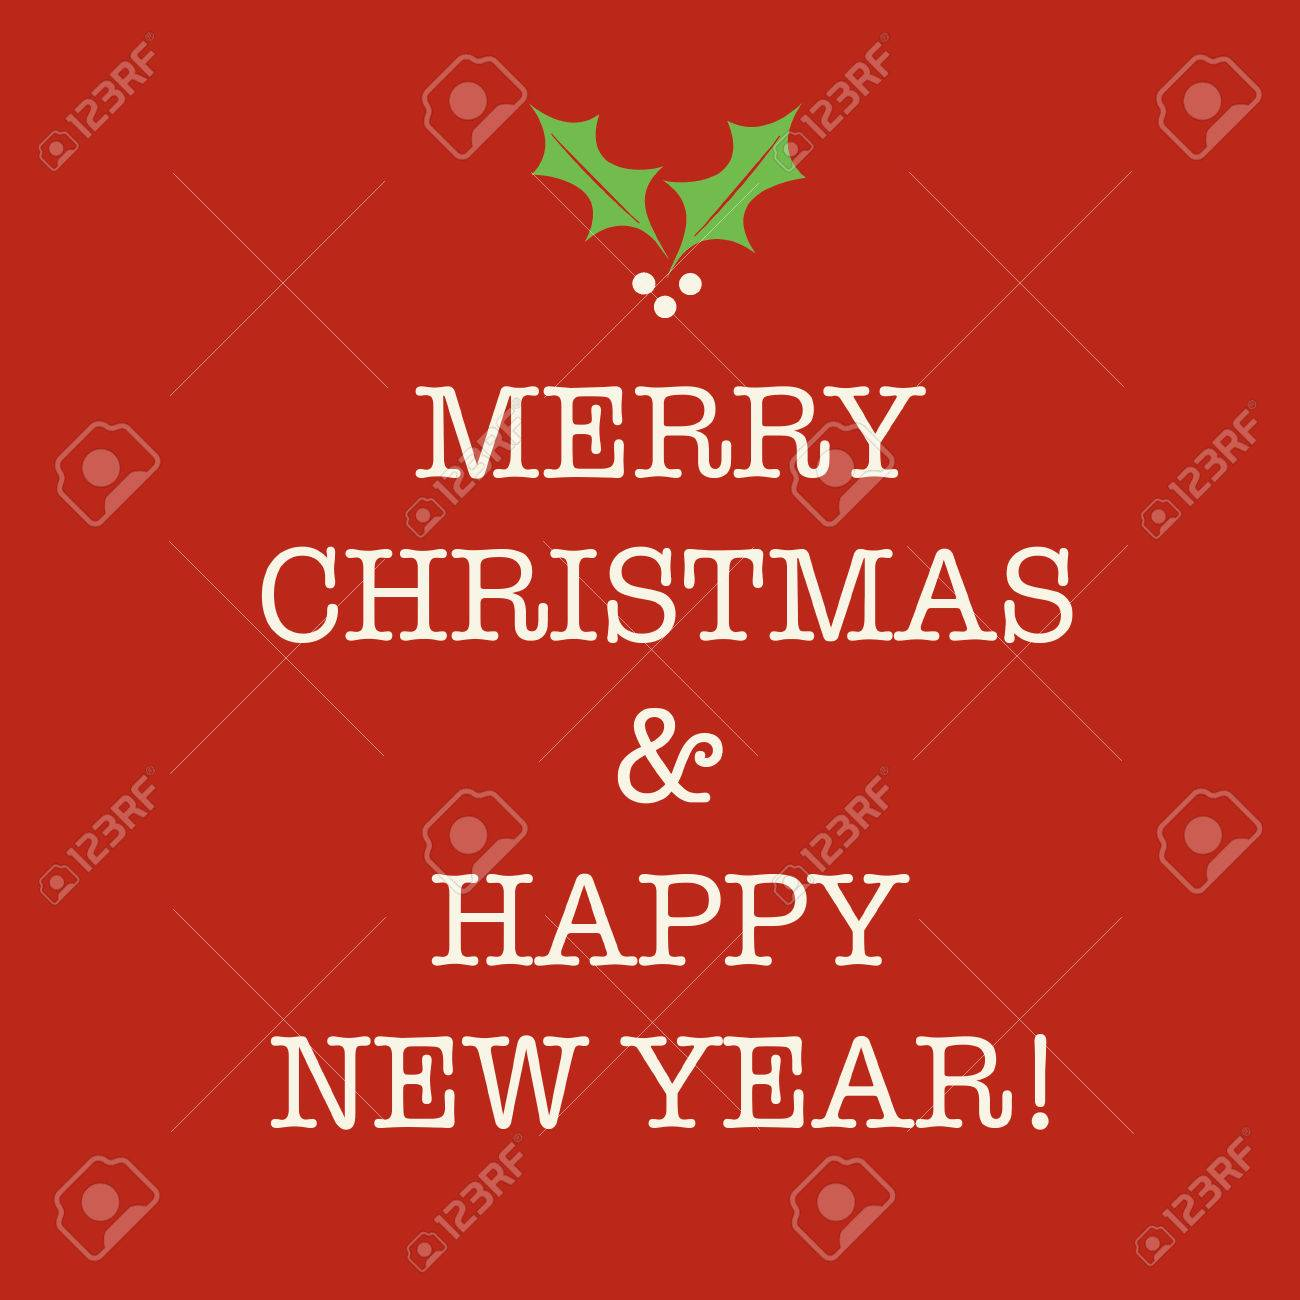 simple red merry christmas and happy new year card with holly stock photo 43923445